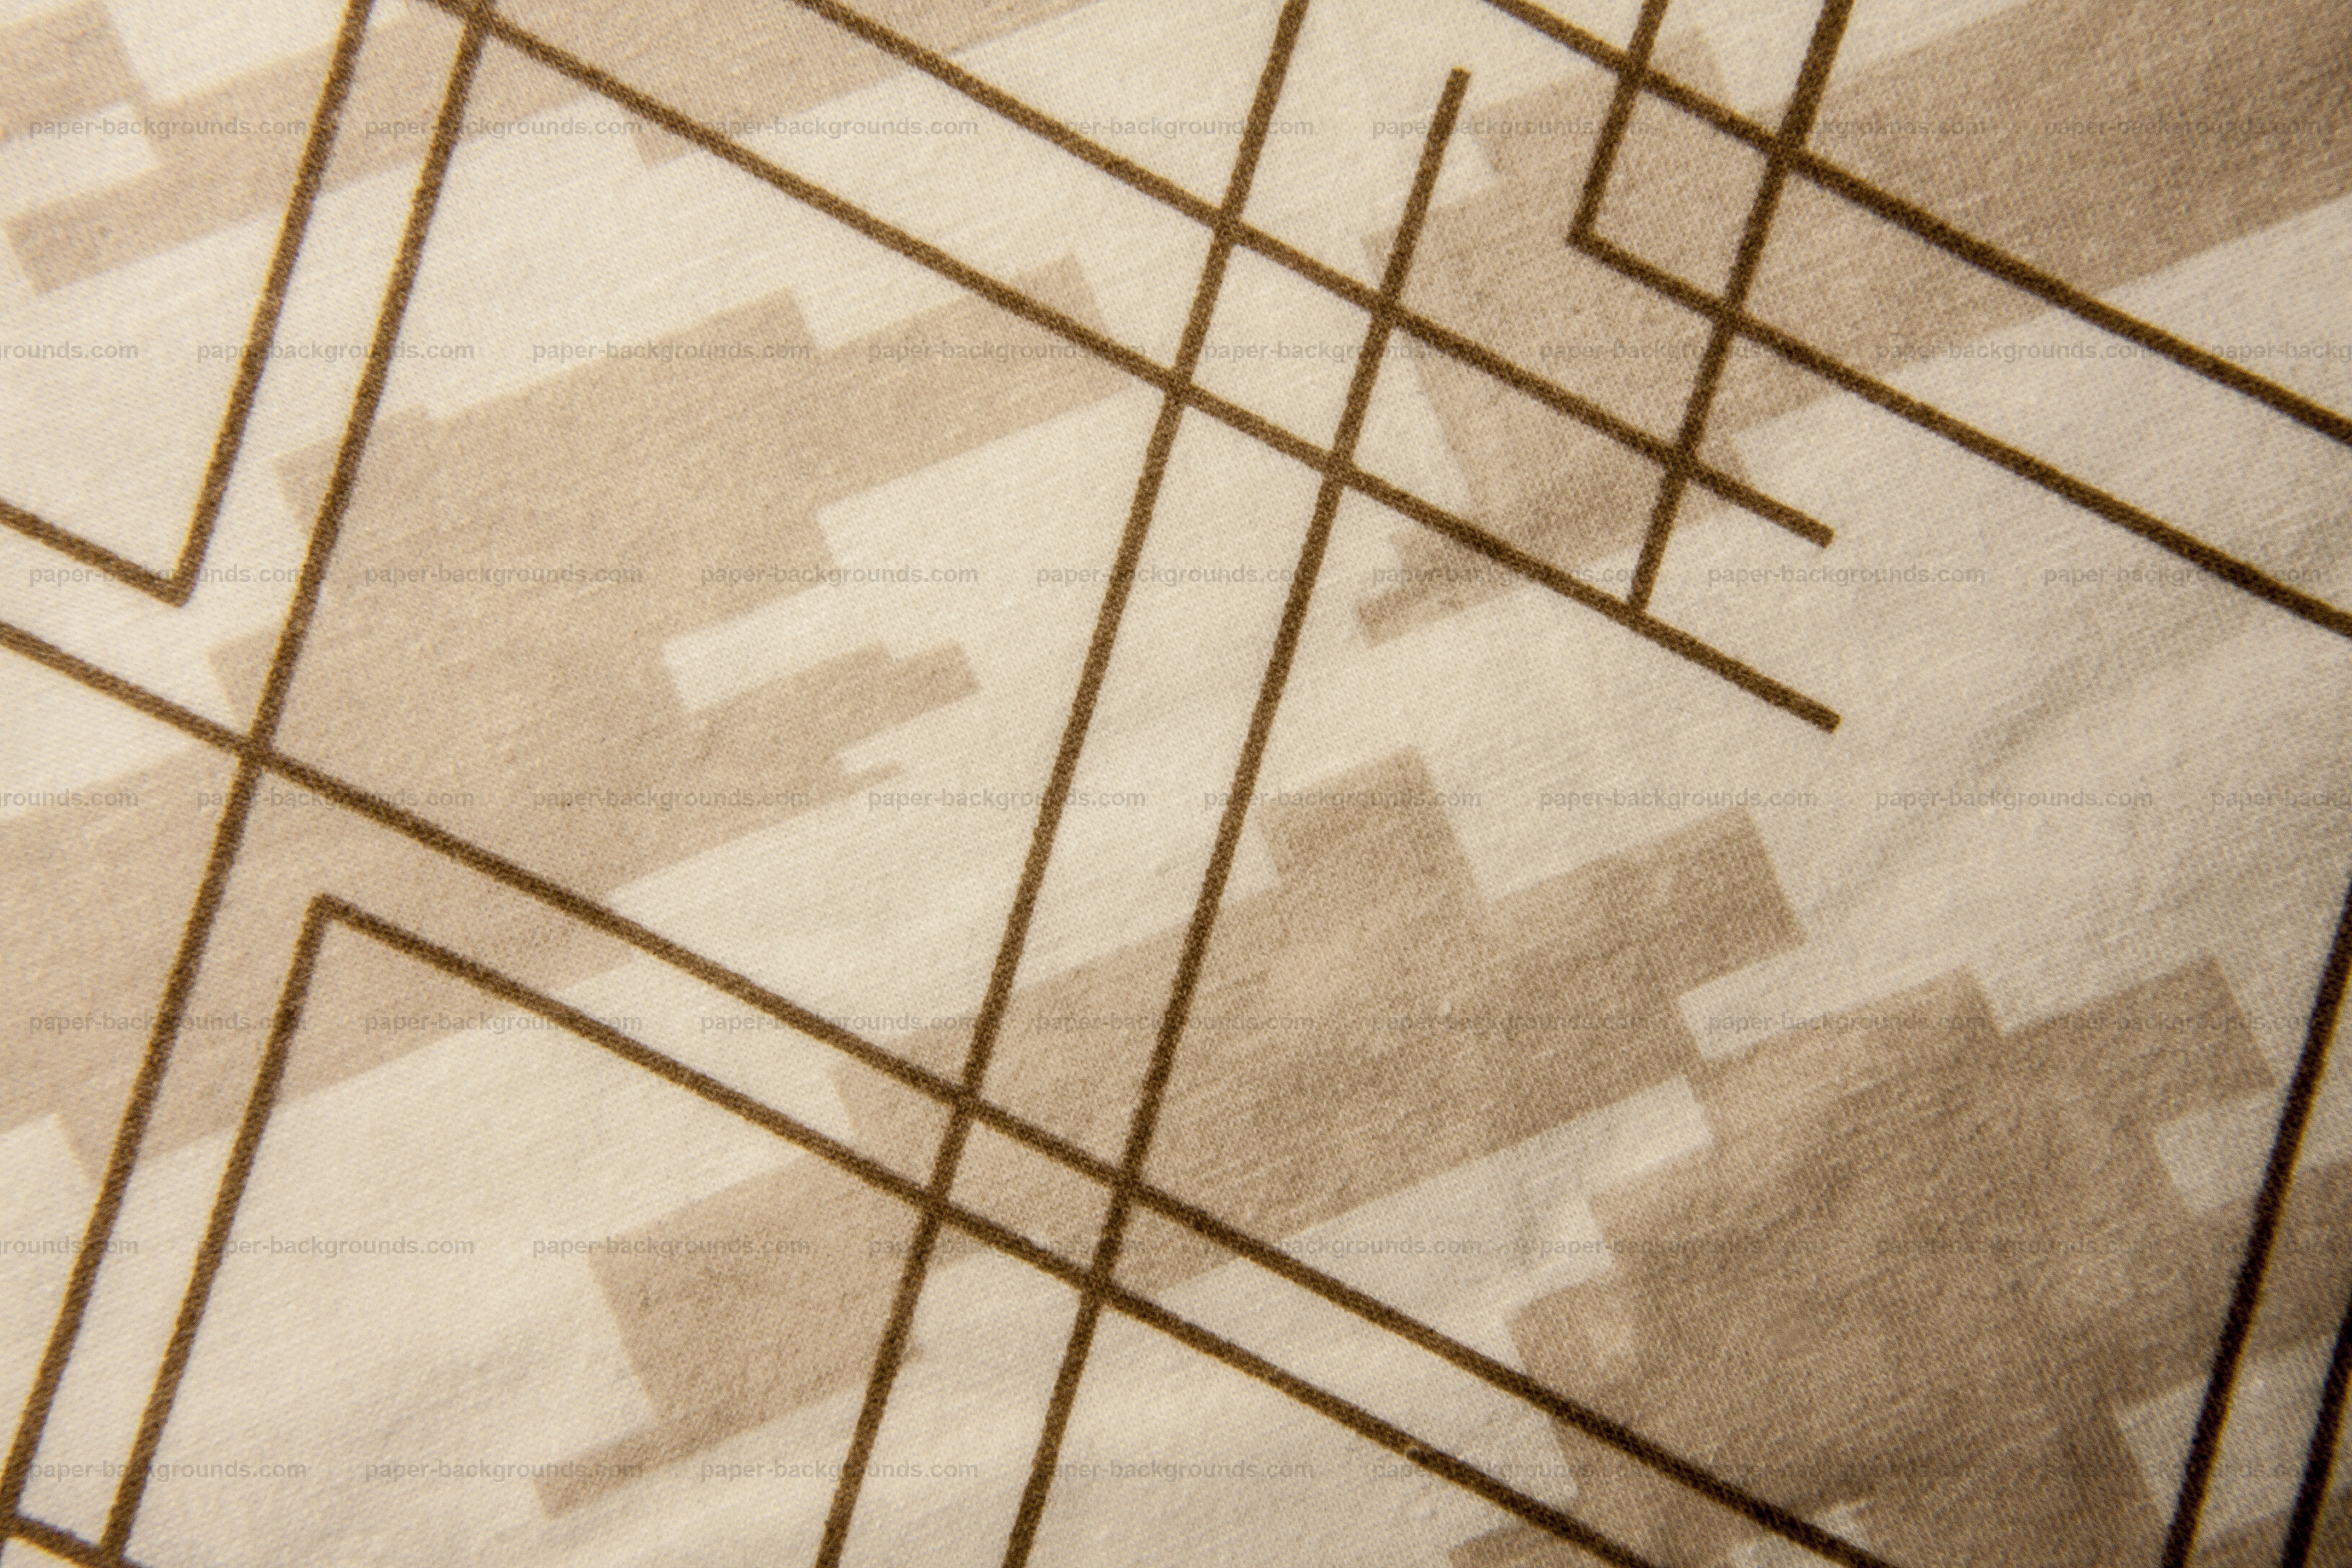 Paper Backgrounds | Brown White Fabric Design Texture for White Fabric Texture Design  555kxo